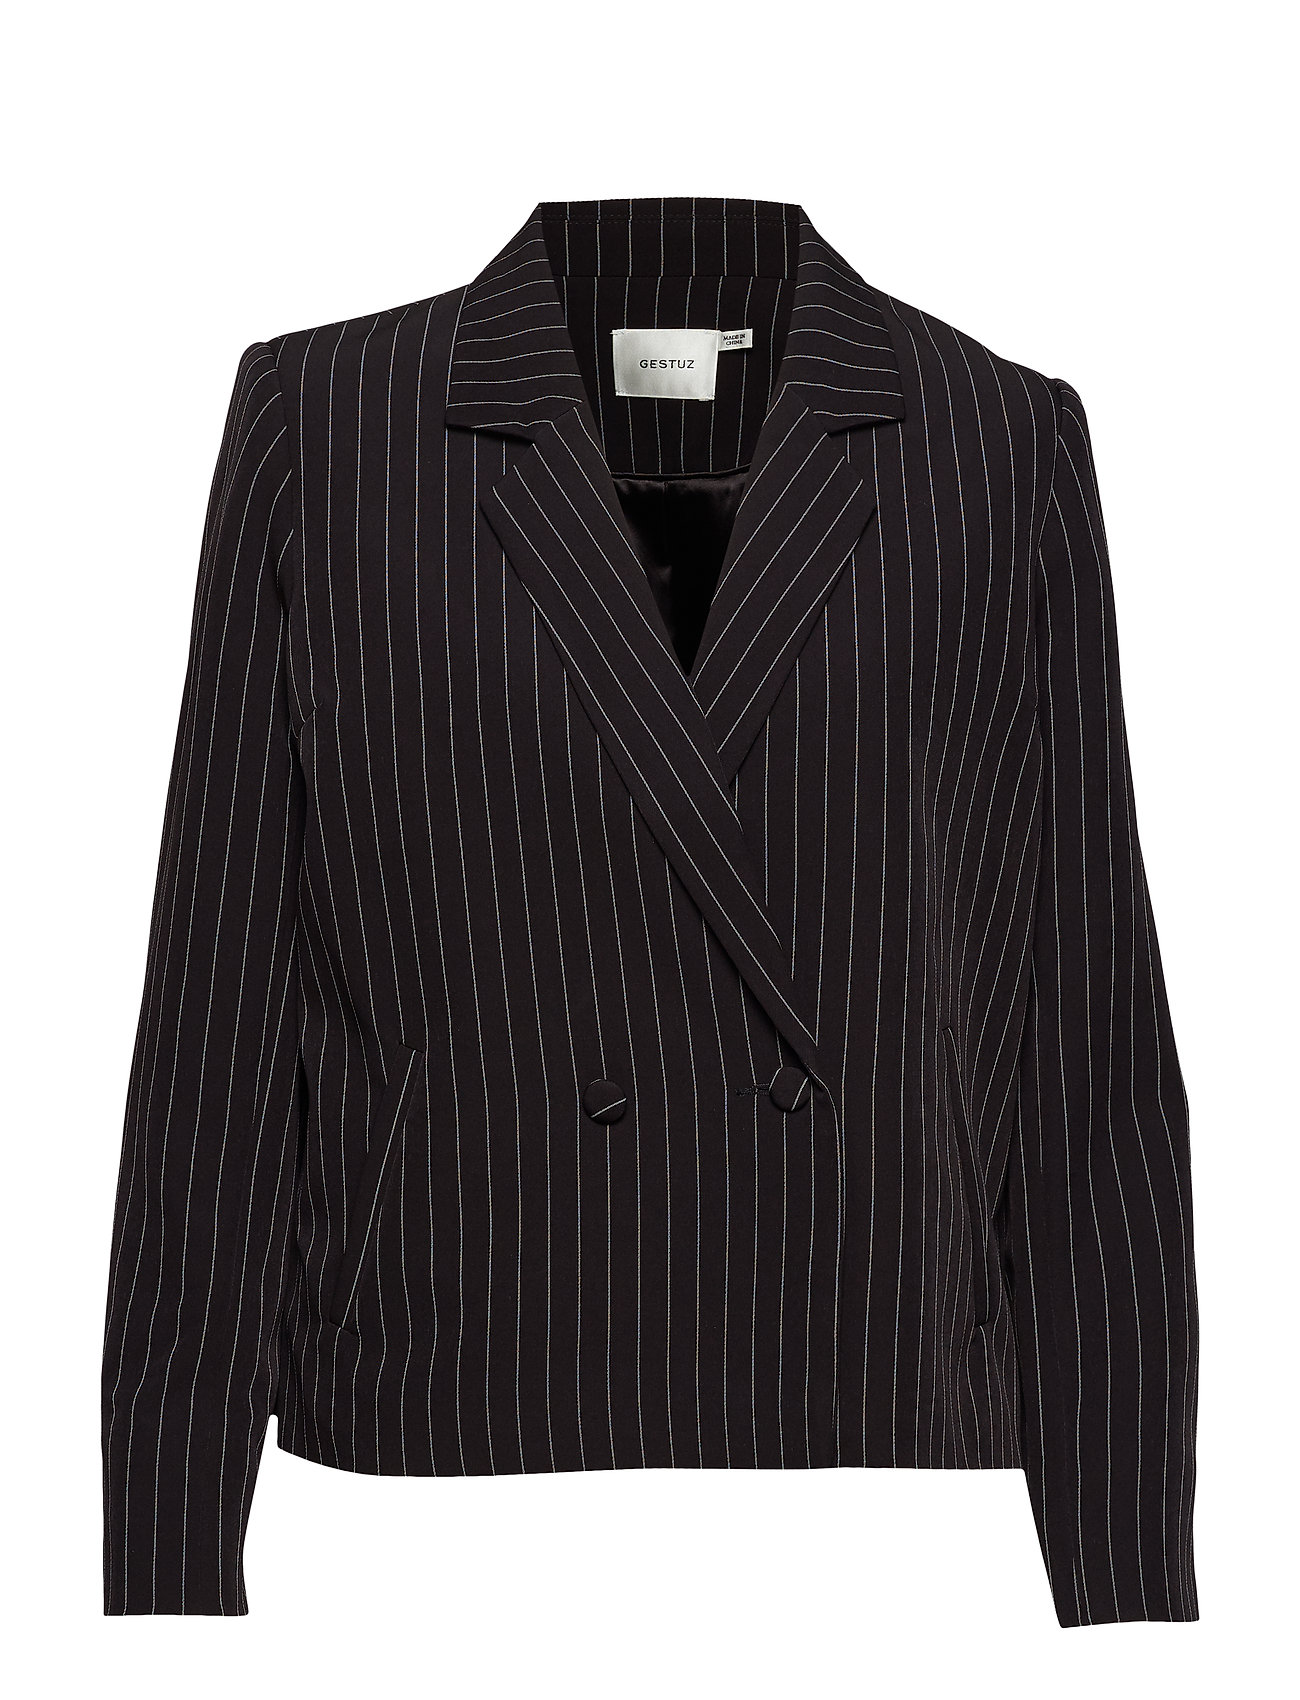 Gestuz Nala blazer SO19 - BLACK PINSTRIPE